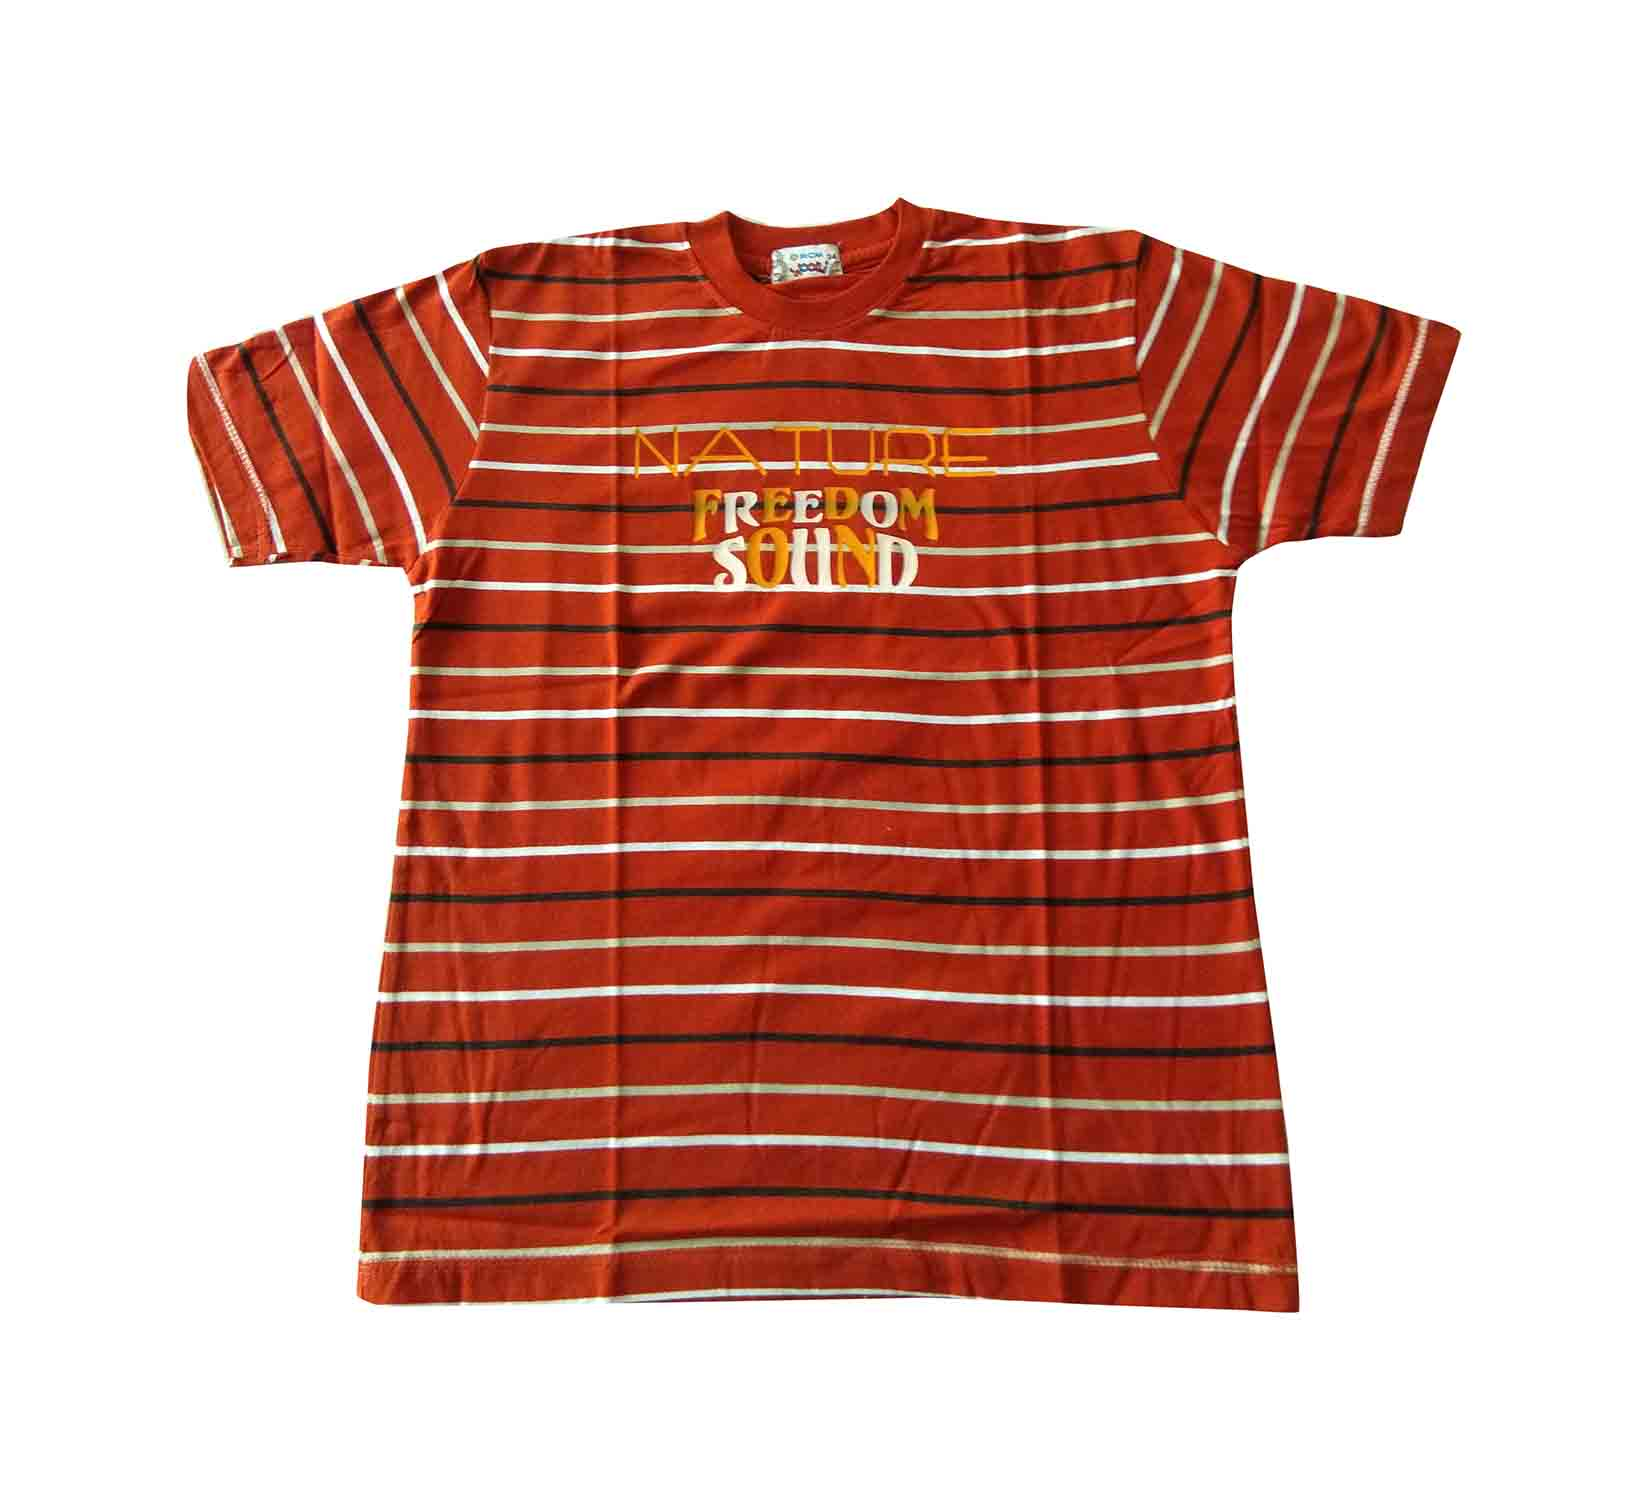 KT JUNE FREEDOM SOUND-TAN KIDS T SHIRT